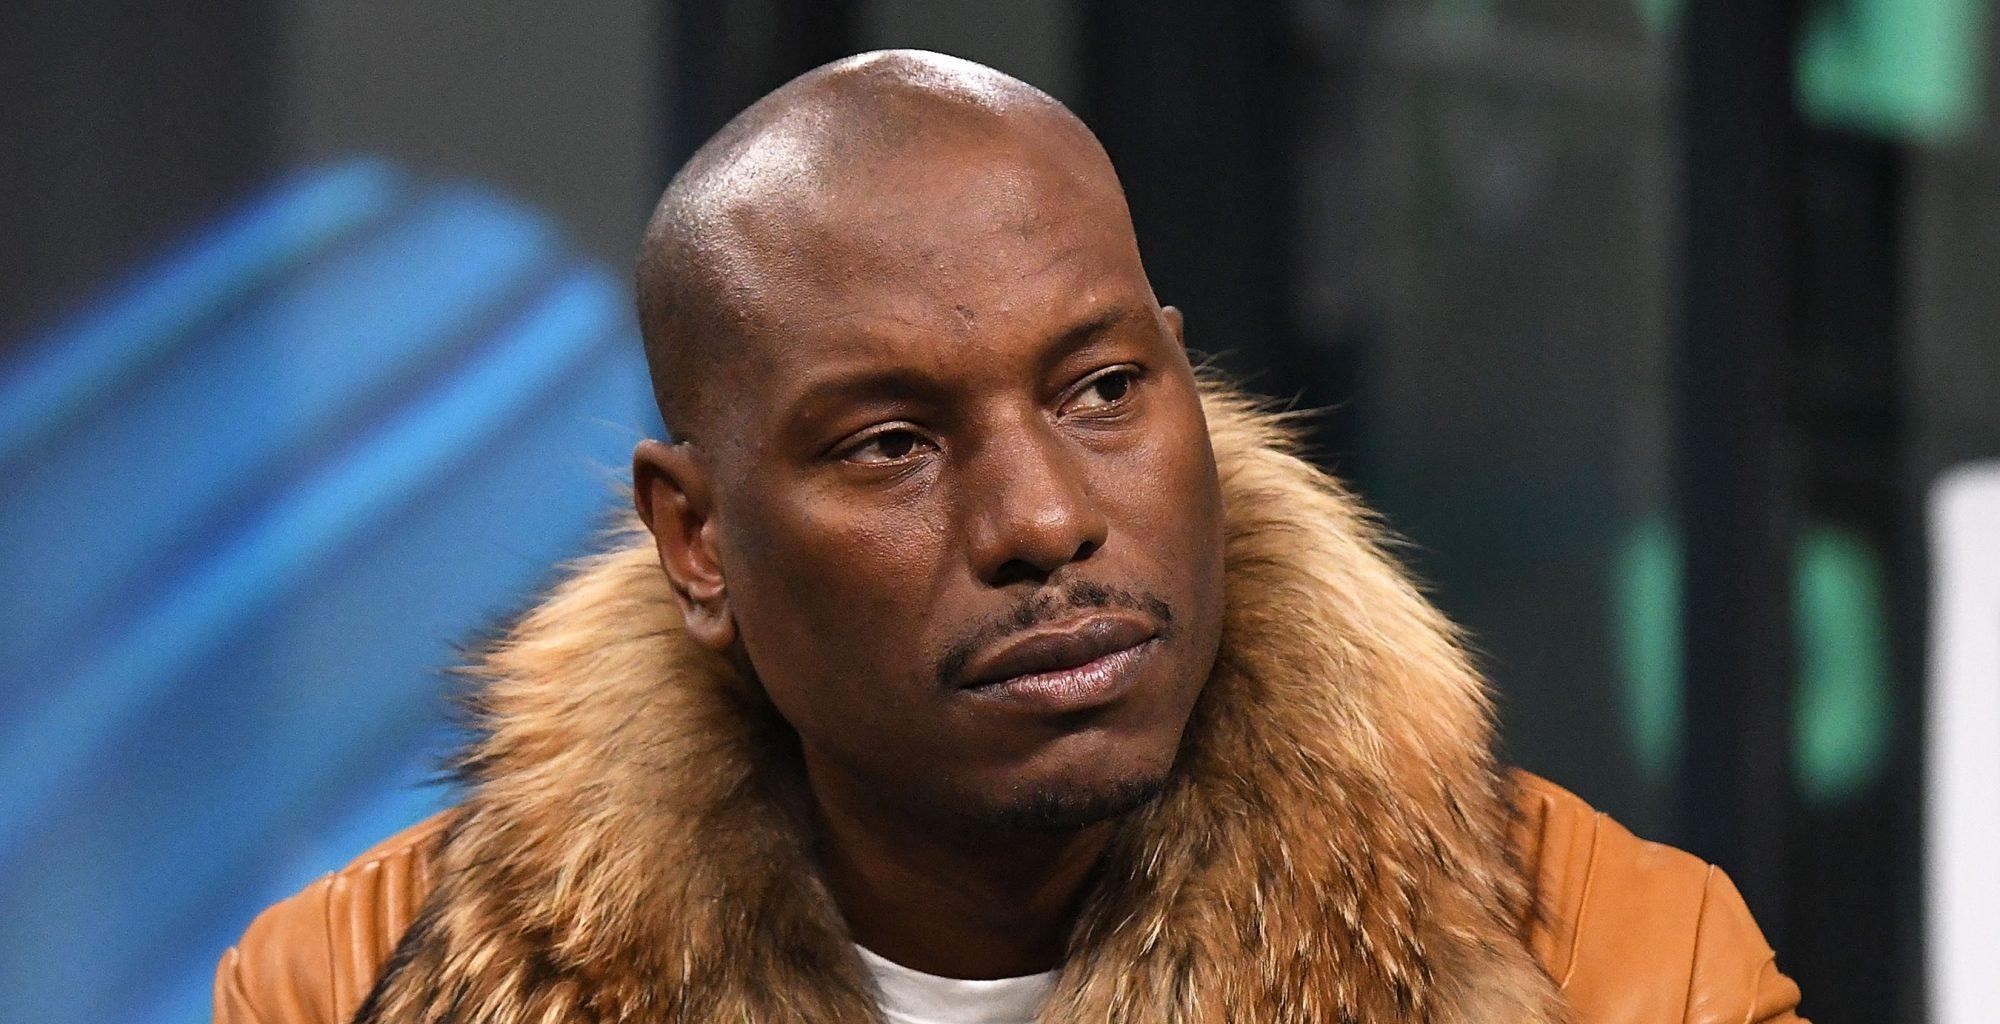 Tyrese's GF Surprises Him With A Romantic Date - See The Video